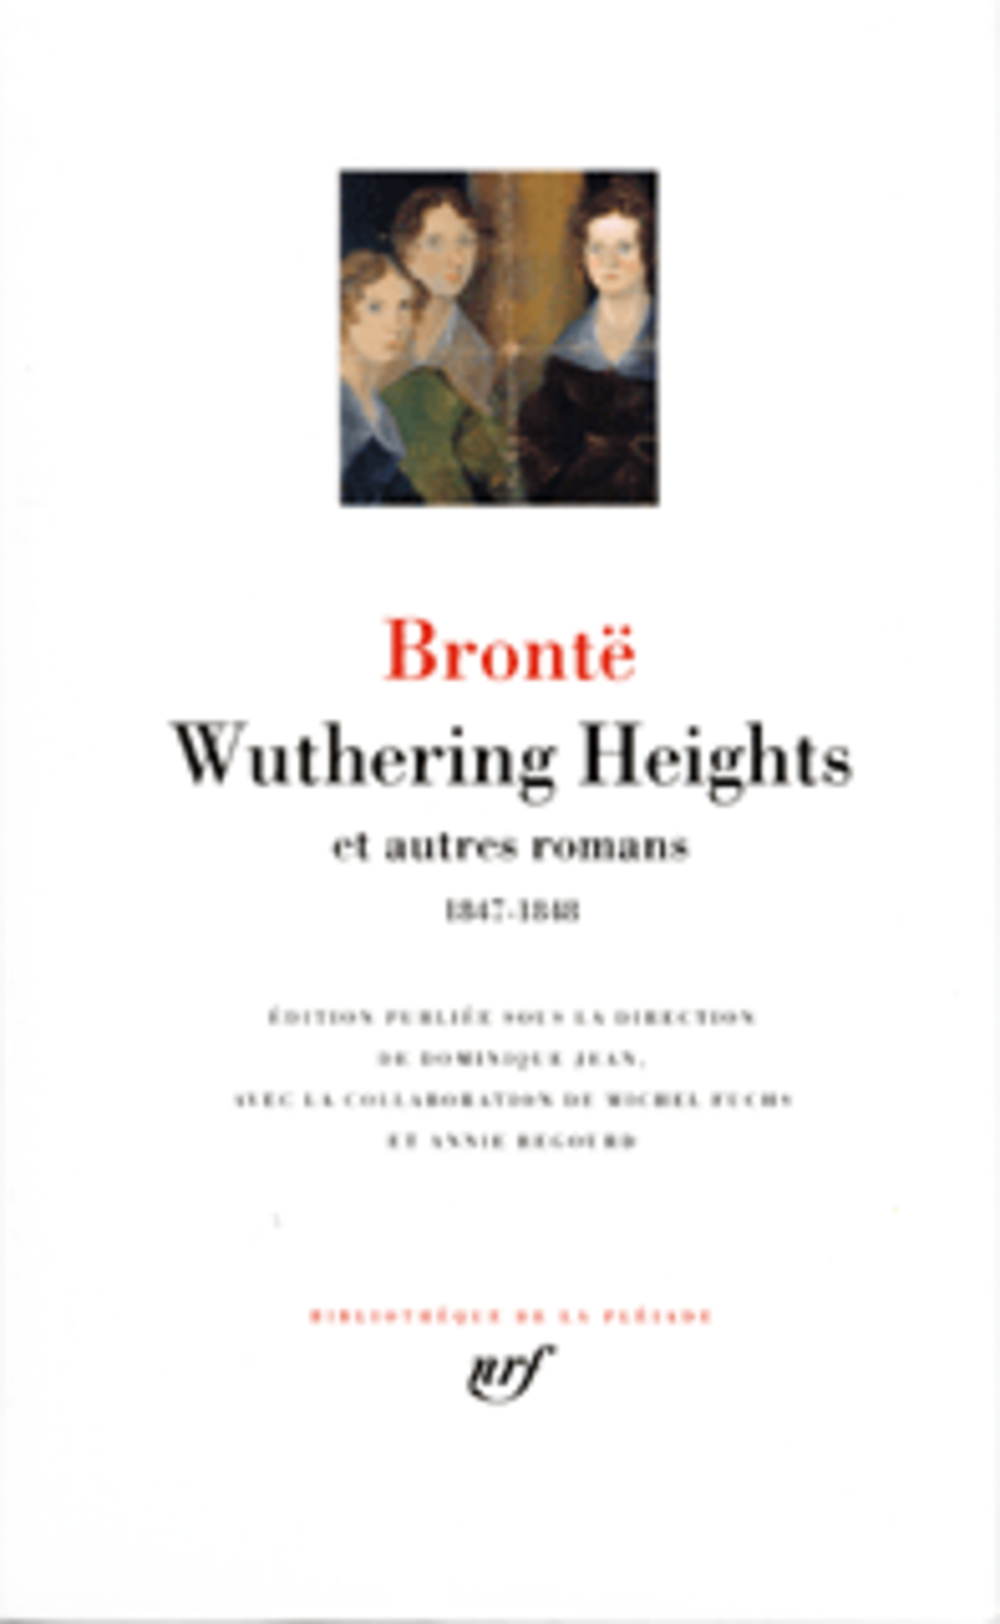 BRONTE, EMILY - WUTHERING HEIGHTS ET AUTRES ROMANS (1847-1848)